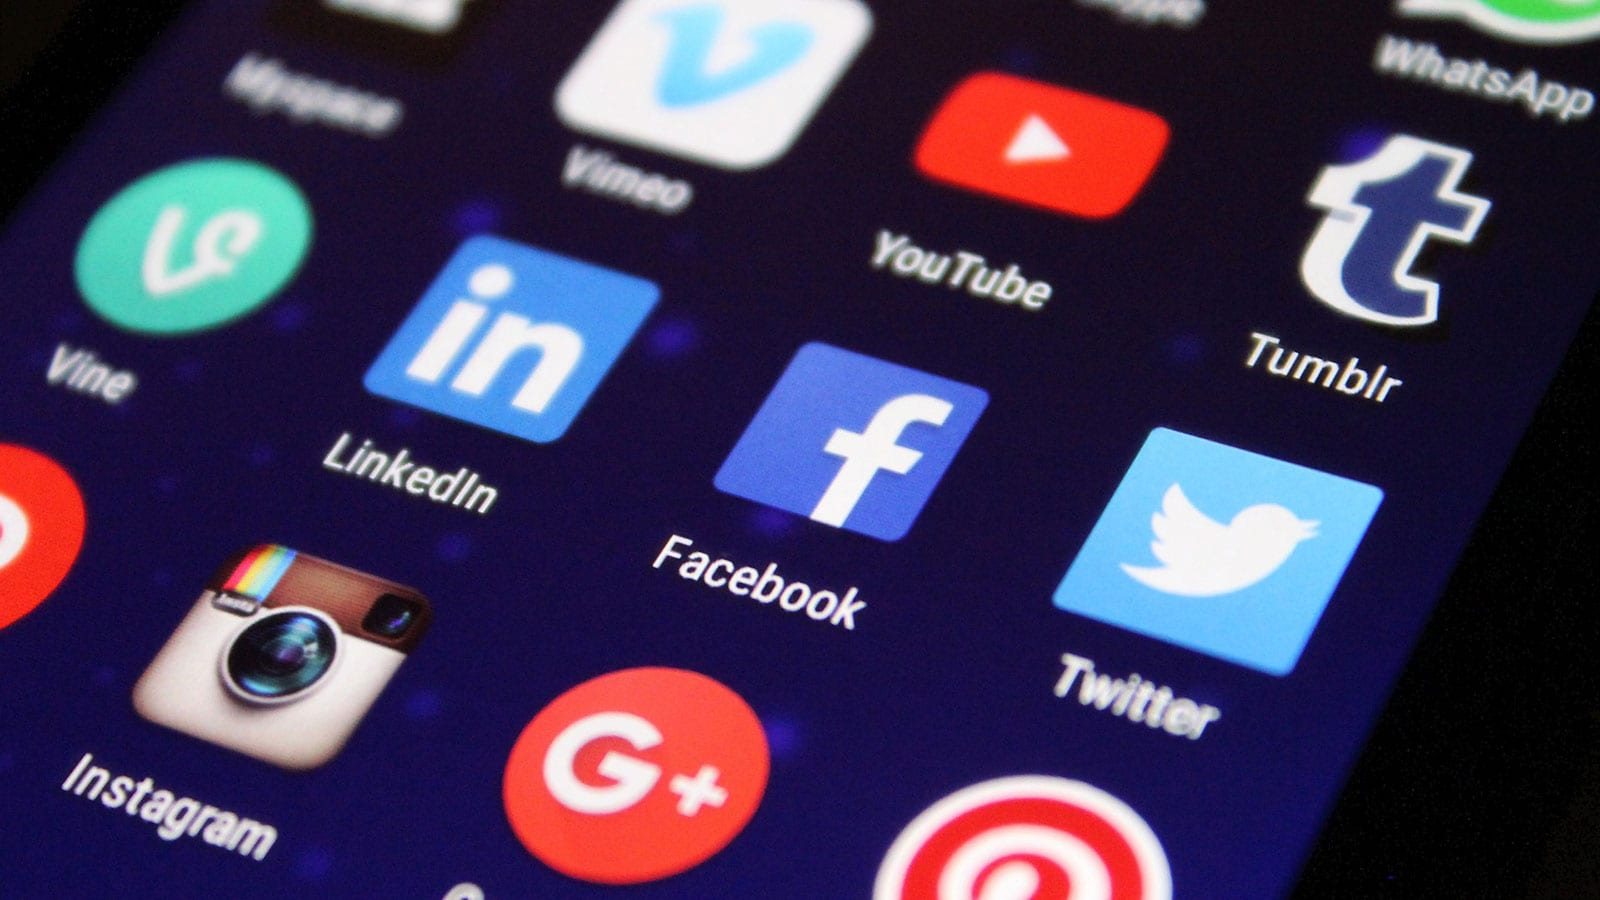 Top Trends for Social Media in 2016